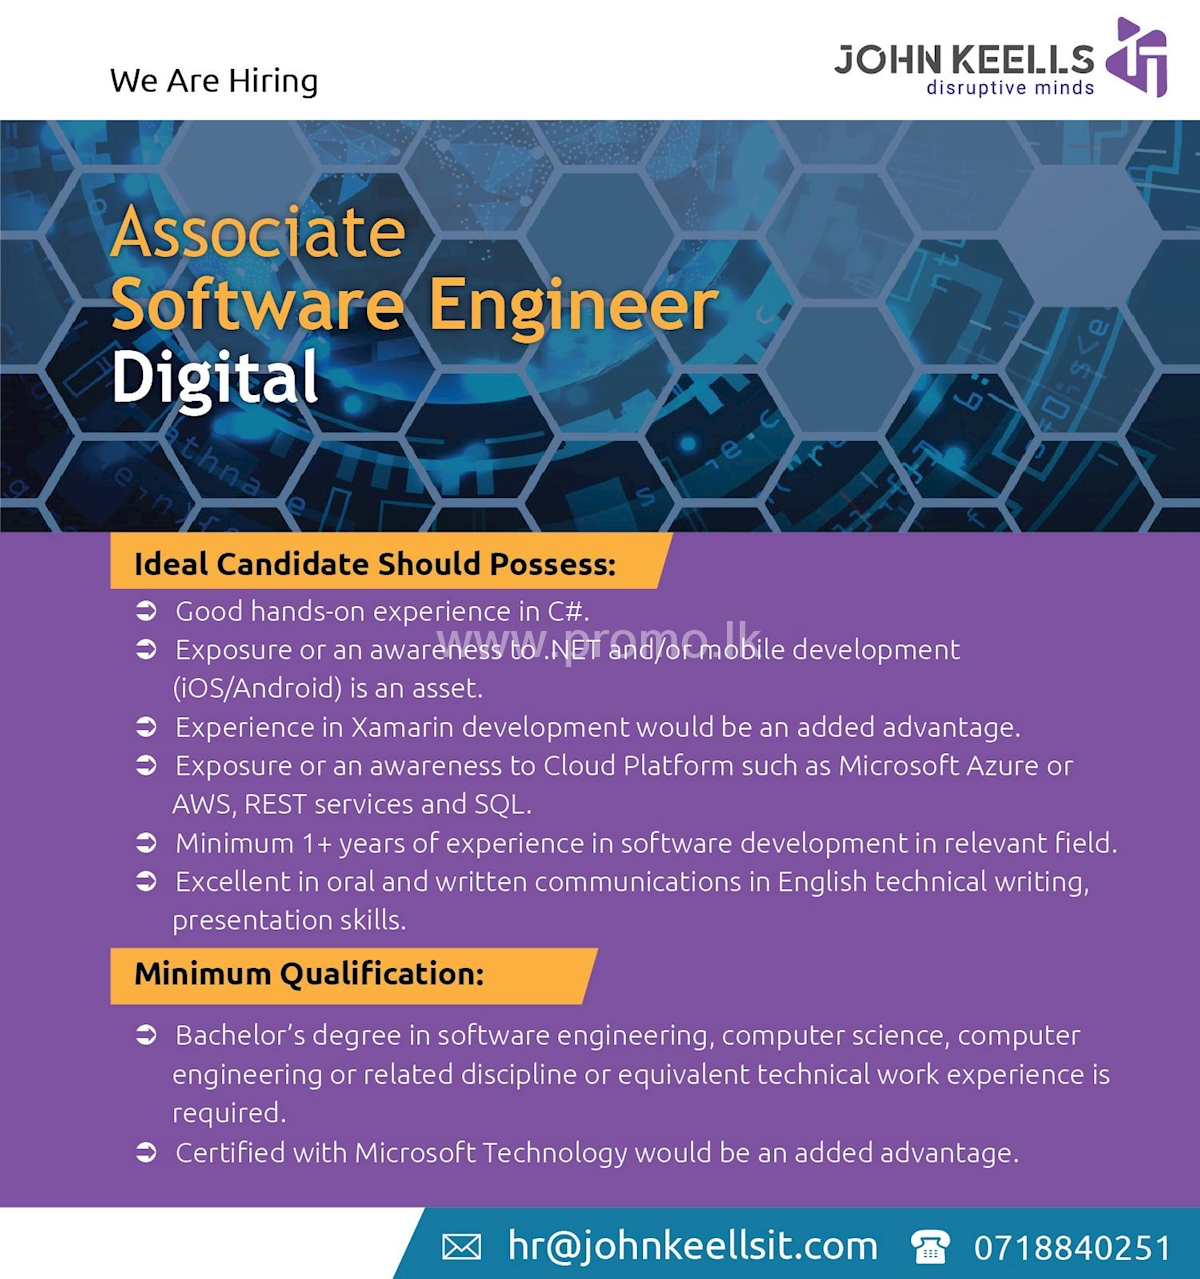 Associate Software Engineer Digital